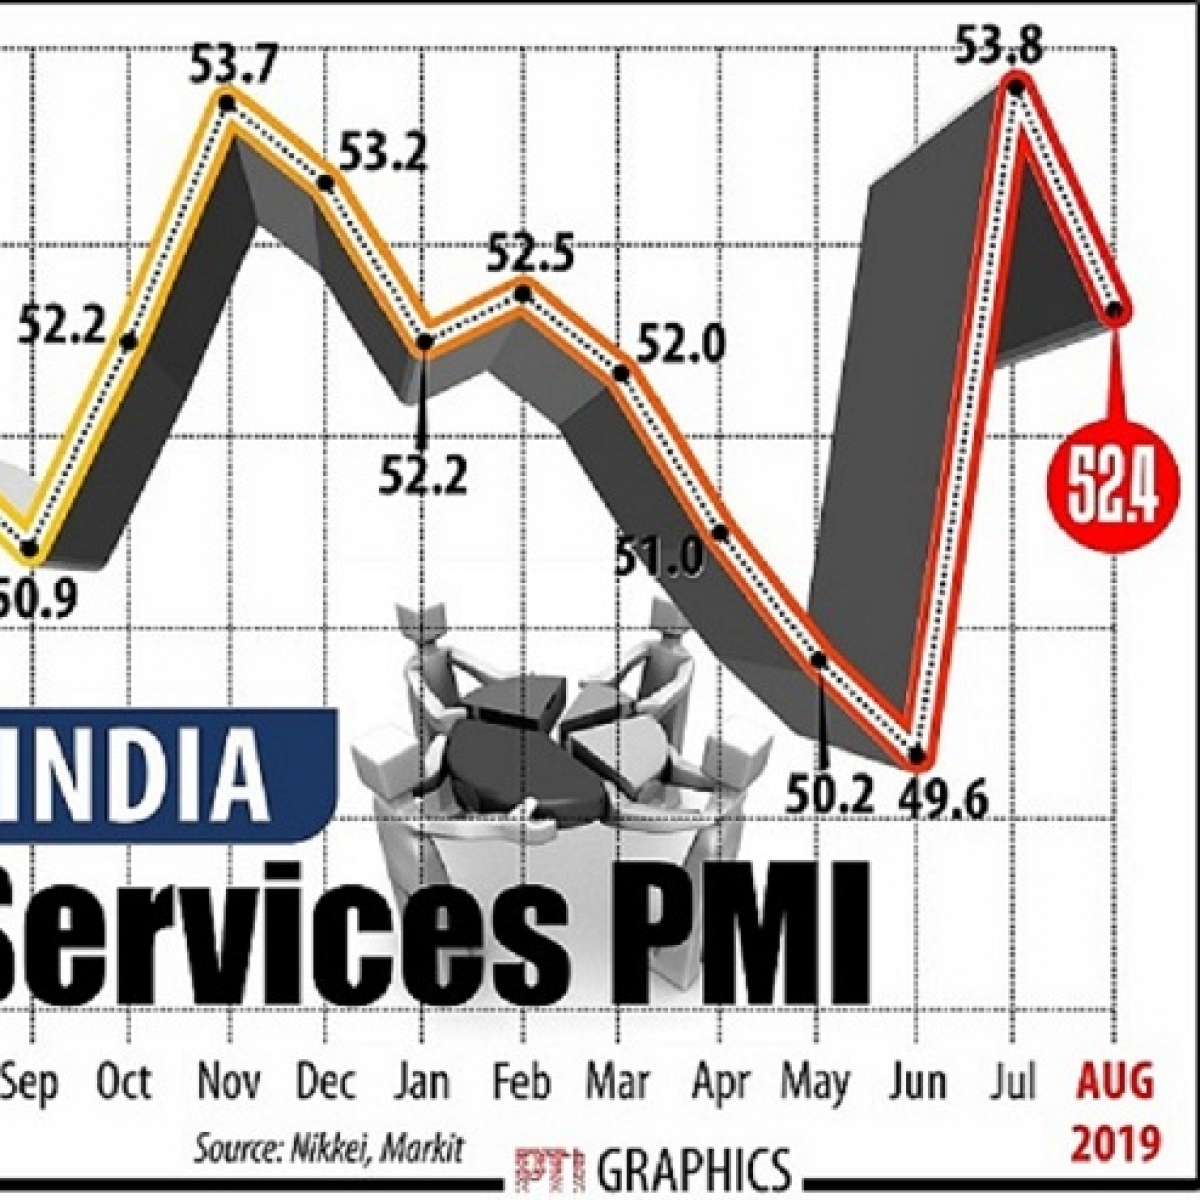 India's services sector activity moderates in Aug: PMI